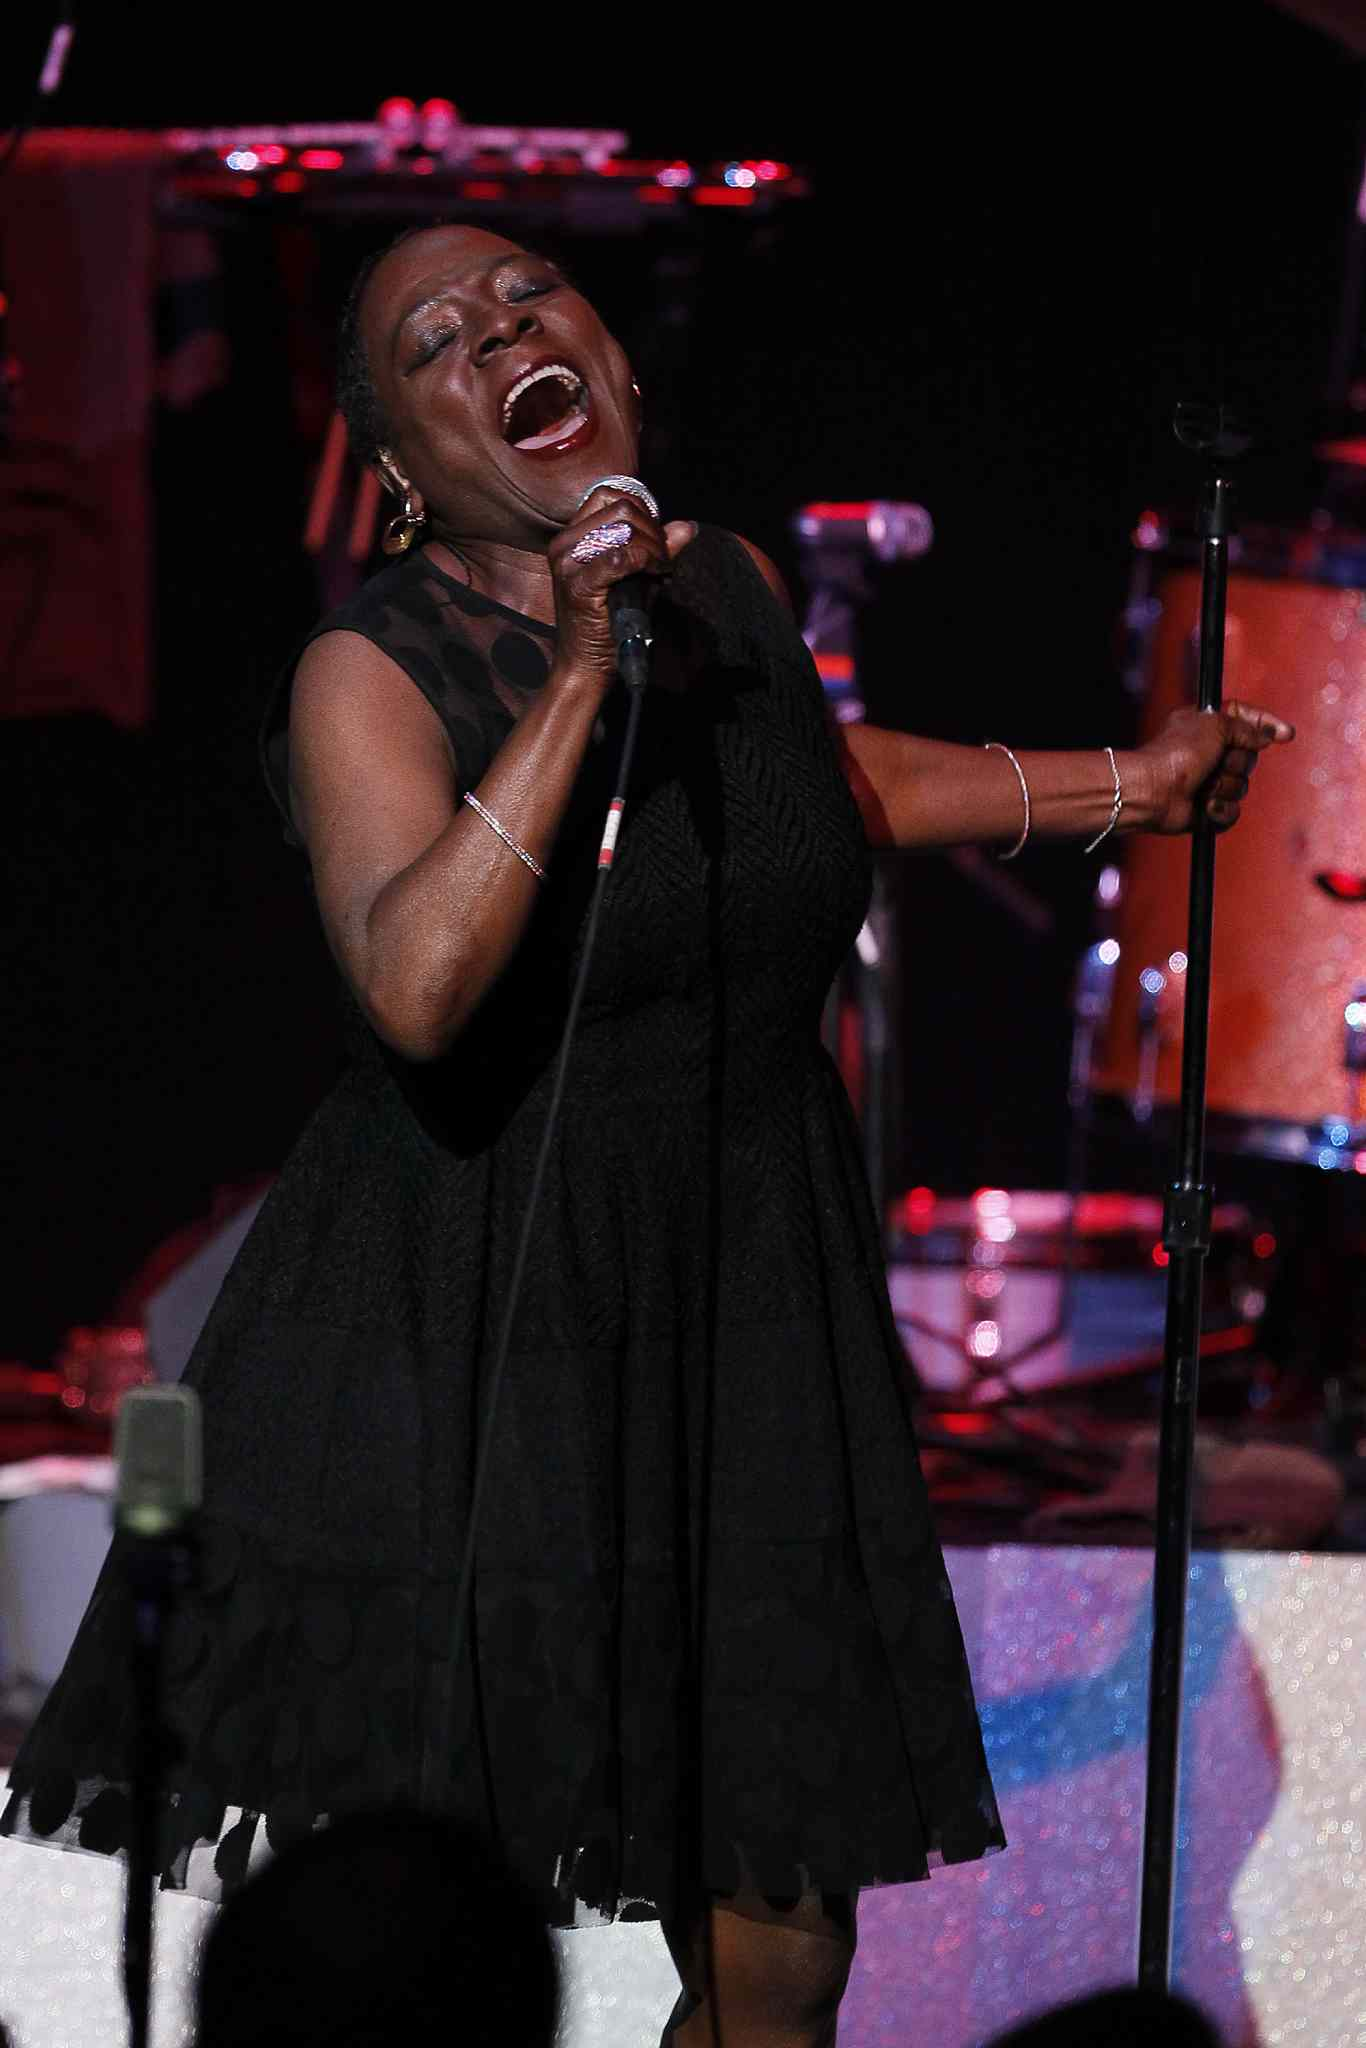 Sharon Jones and The Dap-Kings are touring to perform their latest album, Give The People What They Want — the release of which was put on hold after Jones was diagnosed with cancer.